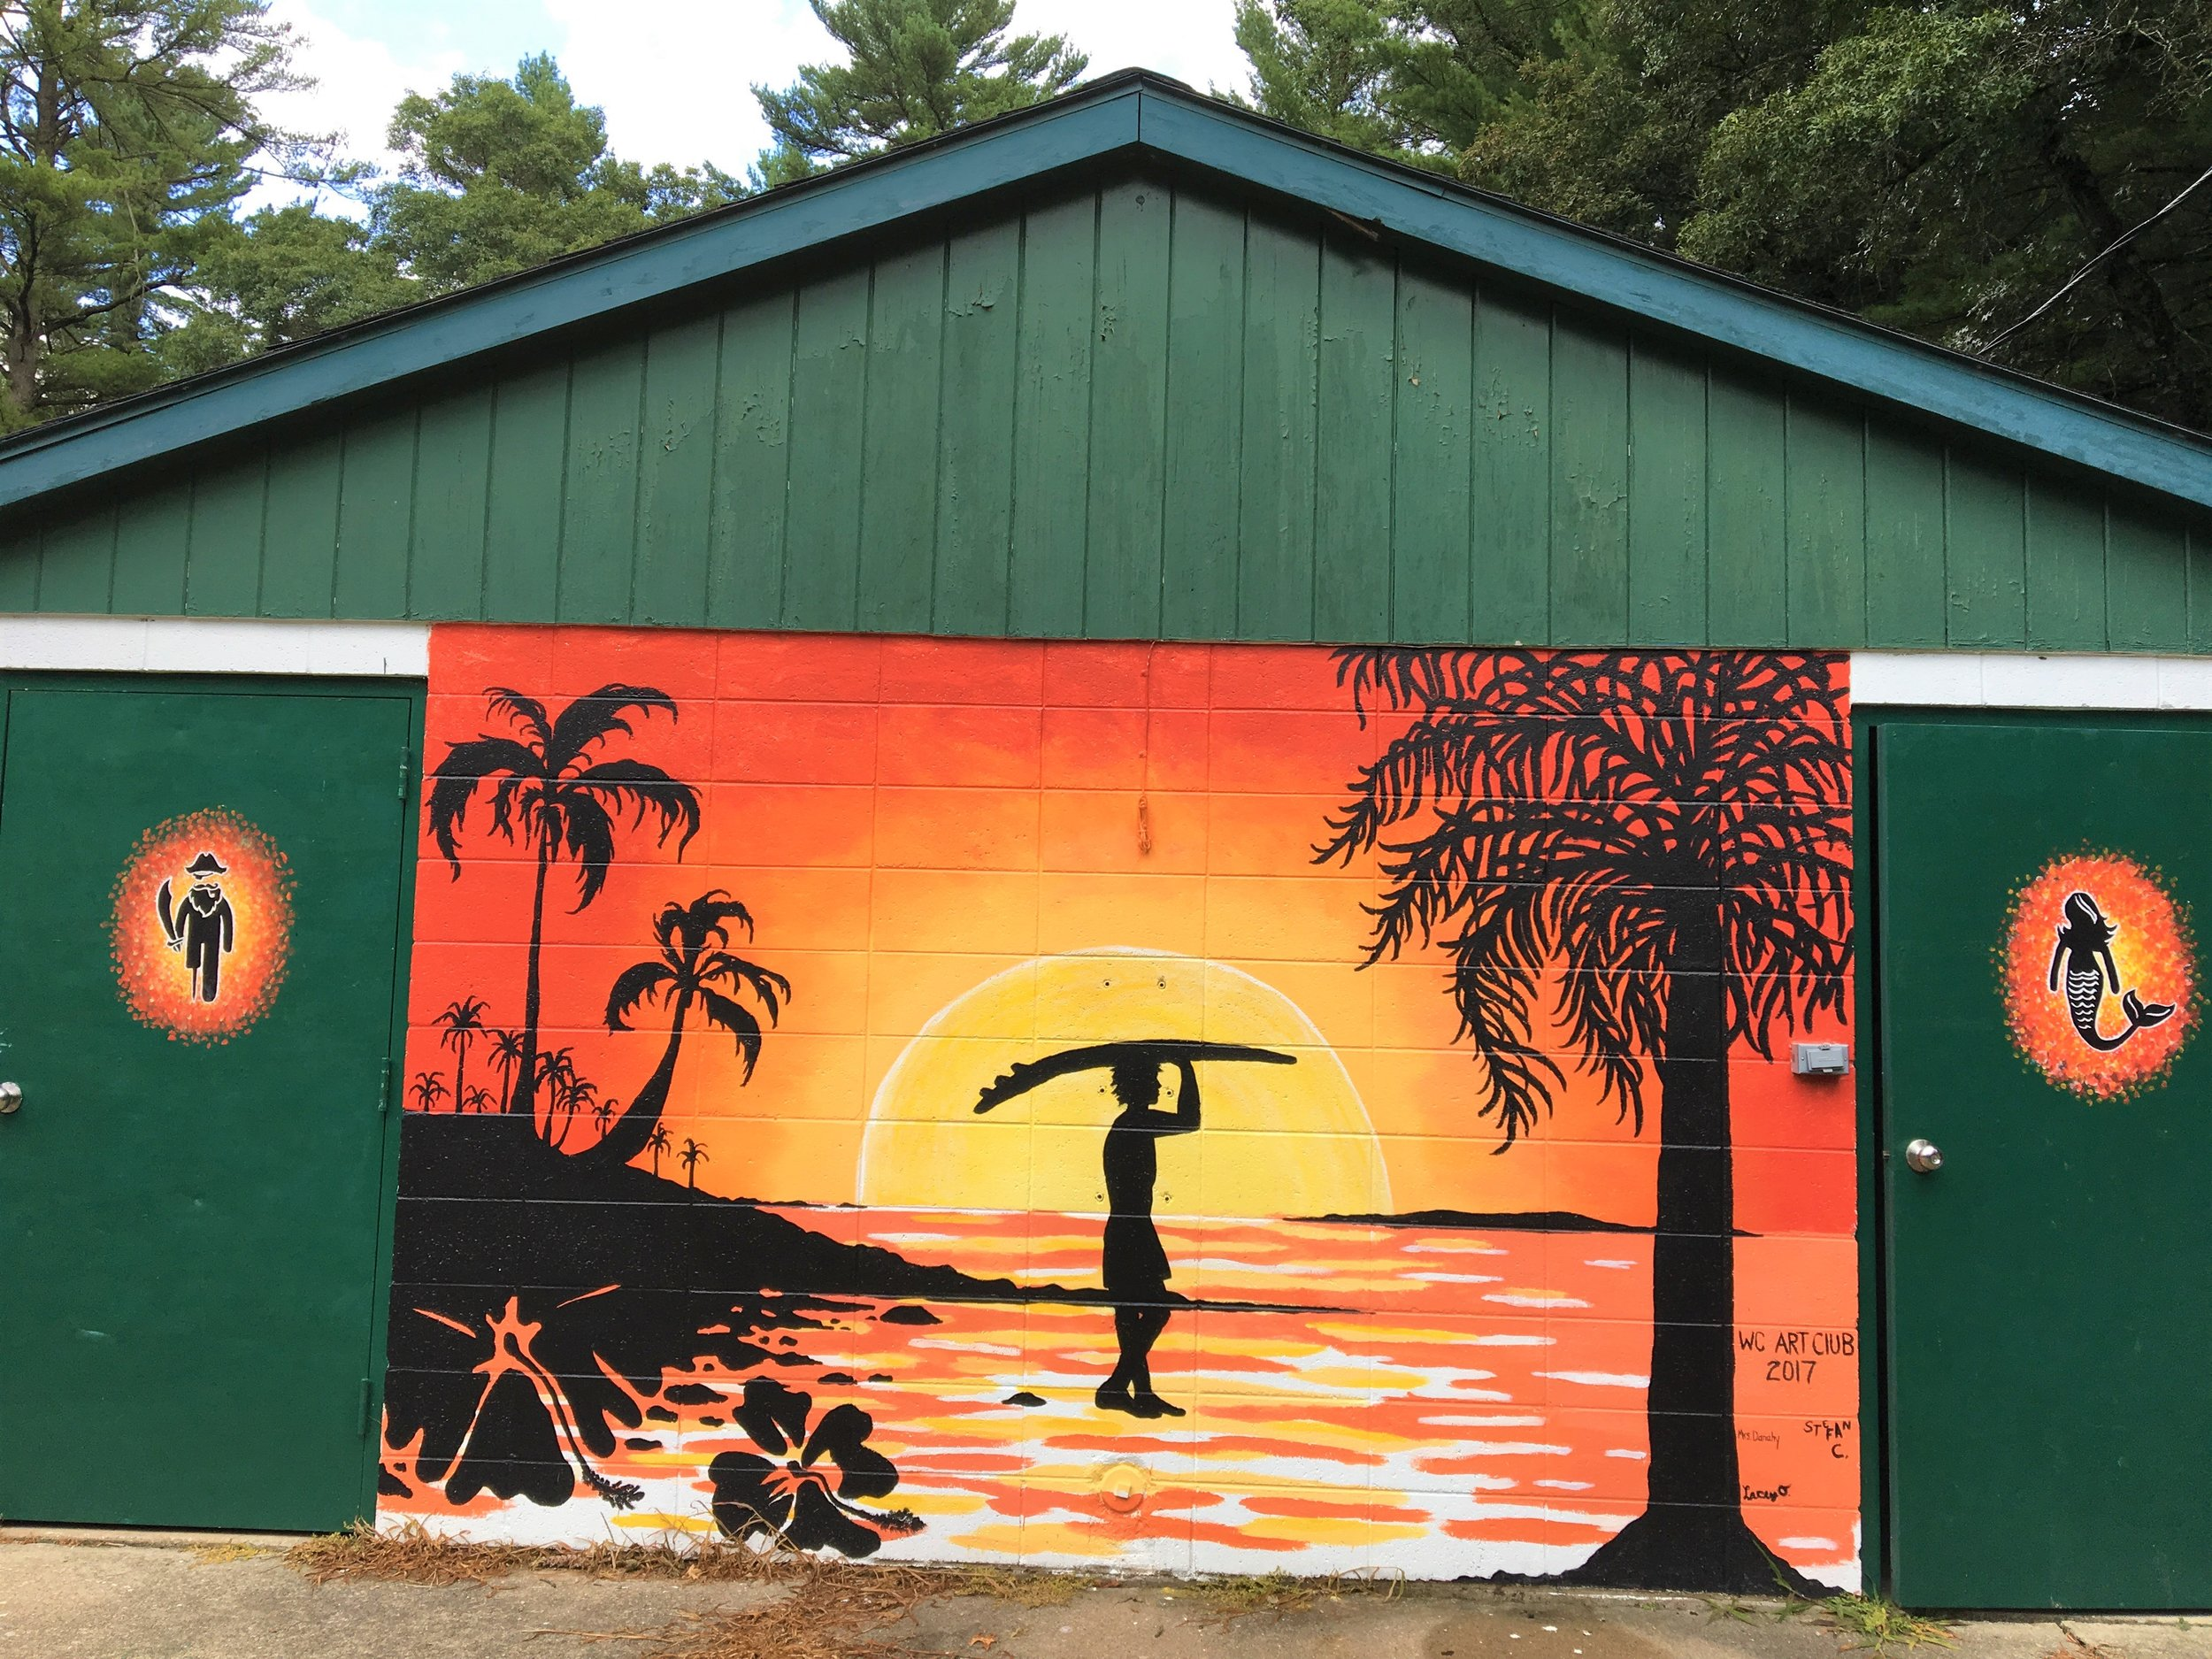 This beach scene painting at the Wonewoc swimming pool impressed Bill Huebel , leading him to contact its creator, art teacher Megan Danahy at Wonewoc-Center Schools.